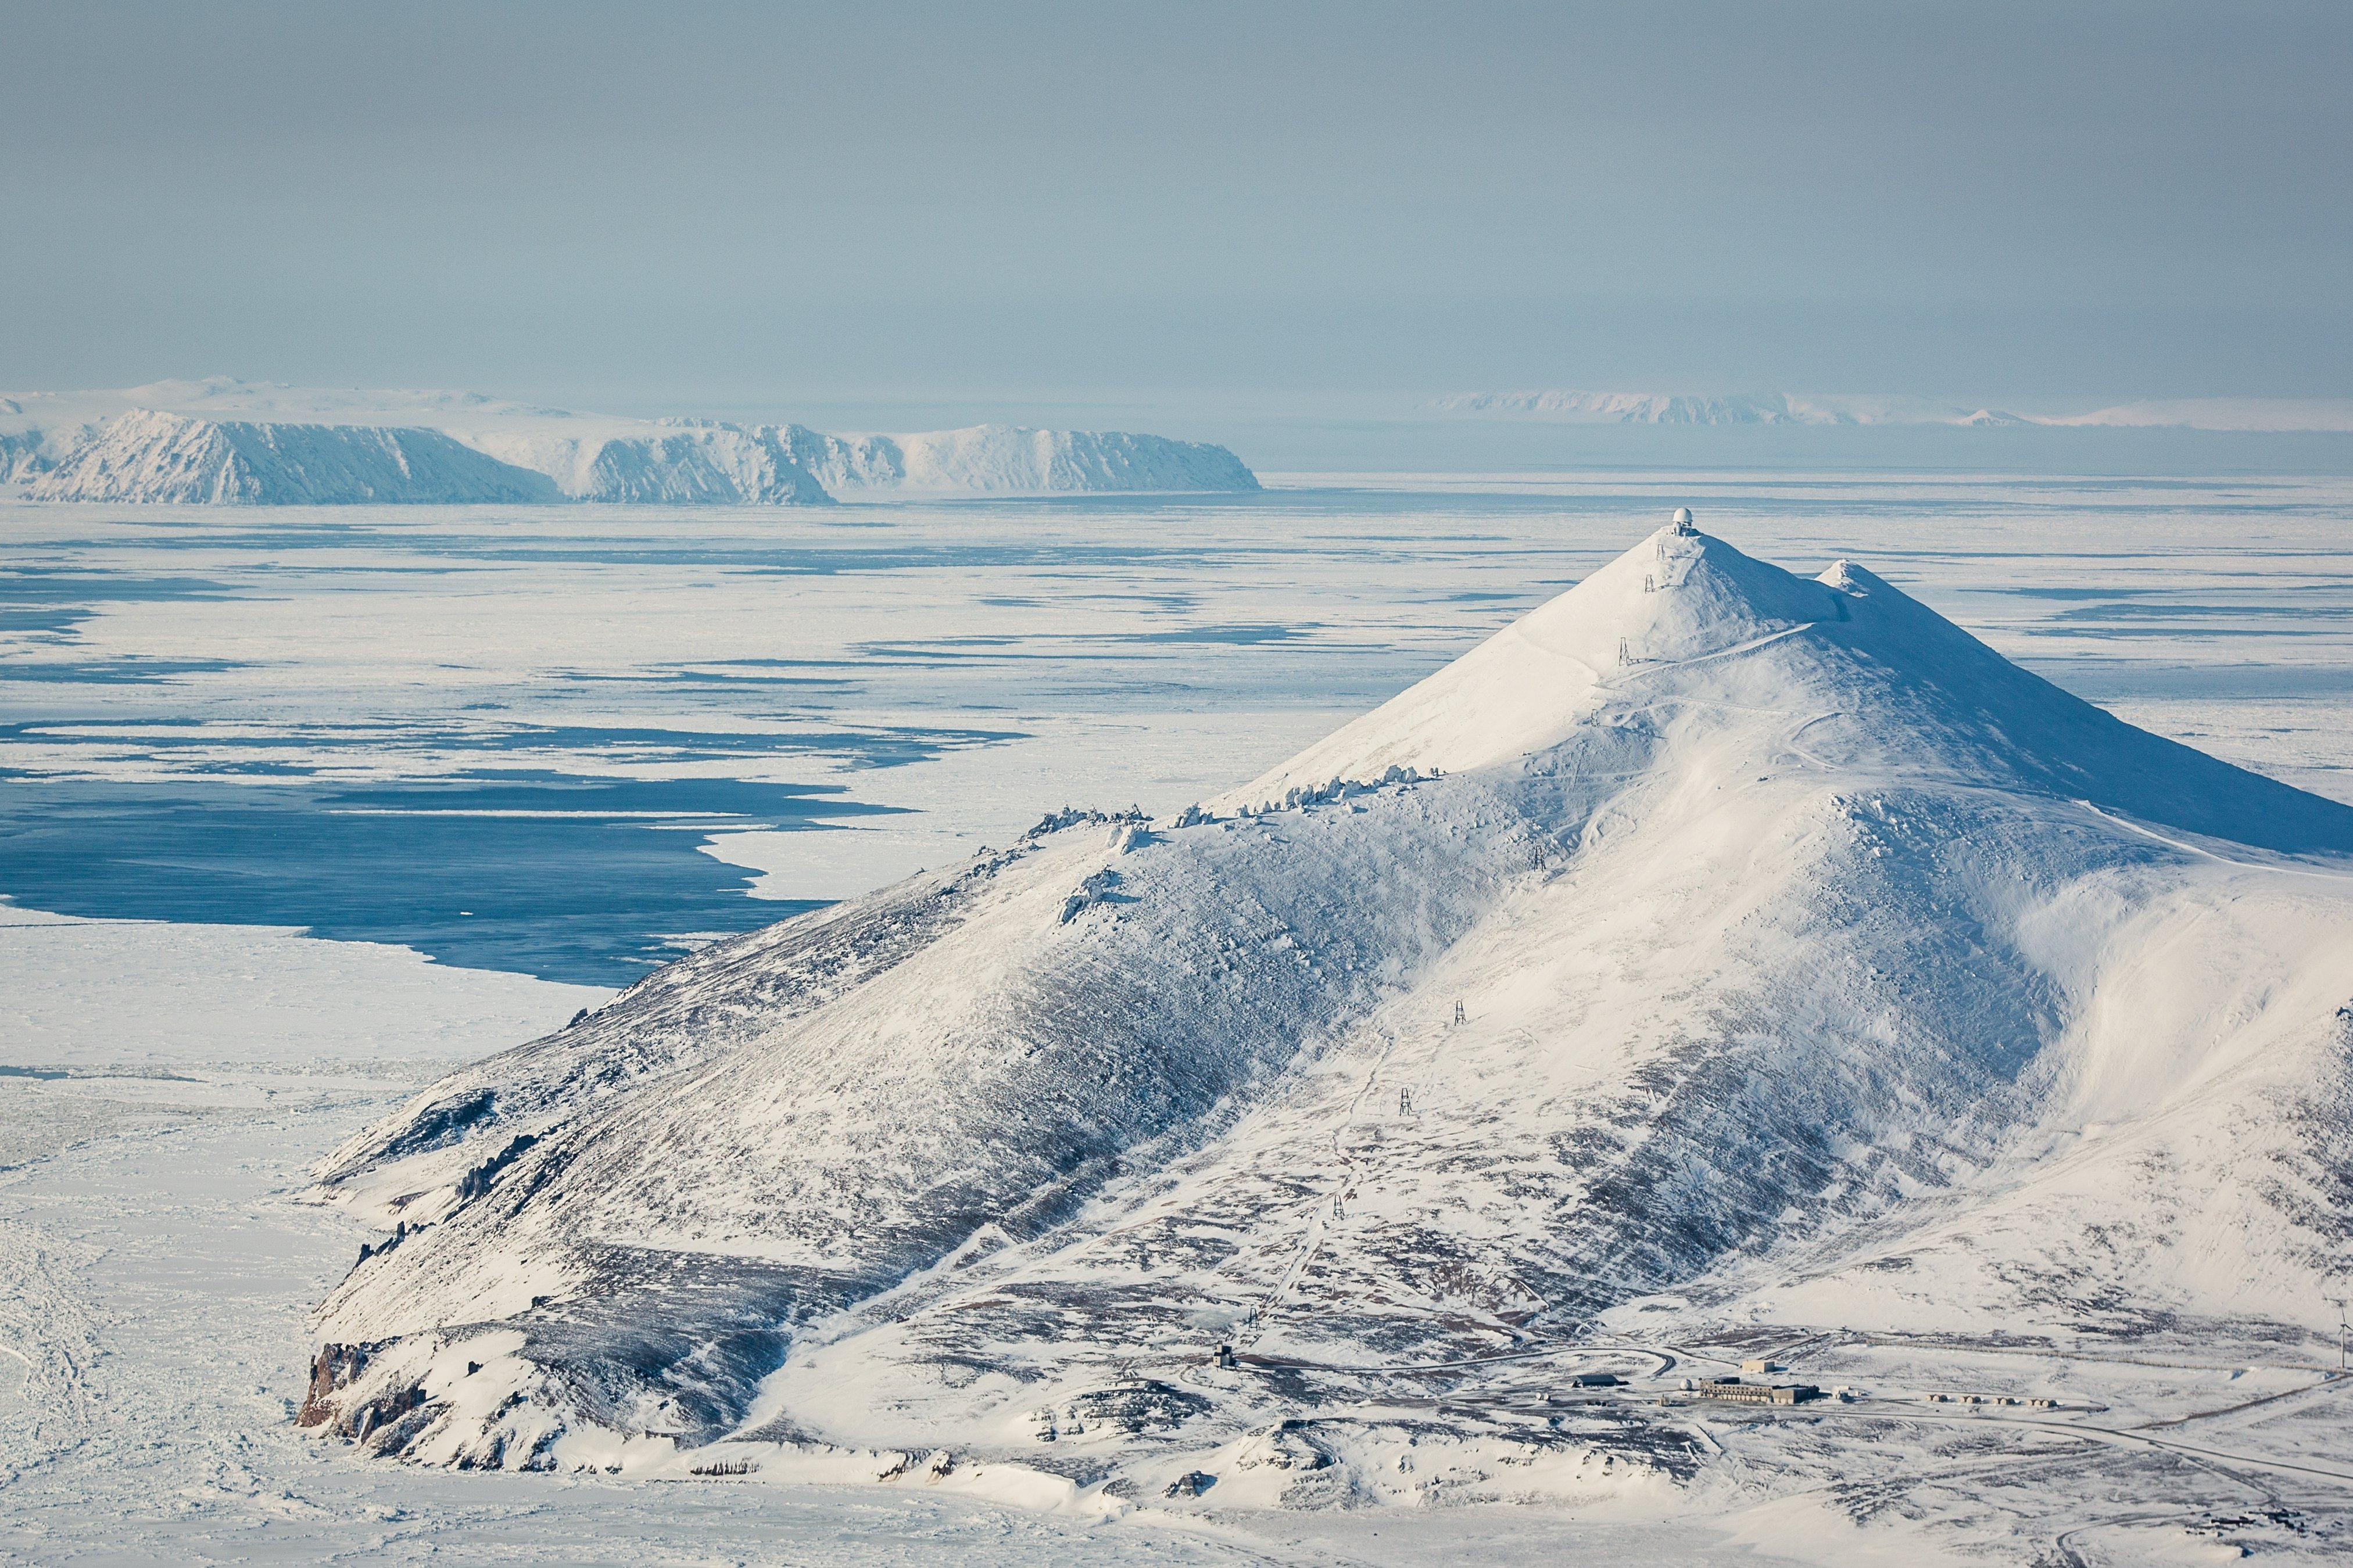 Cooperation with Russia in the Arctic remains essential